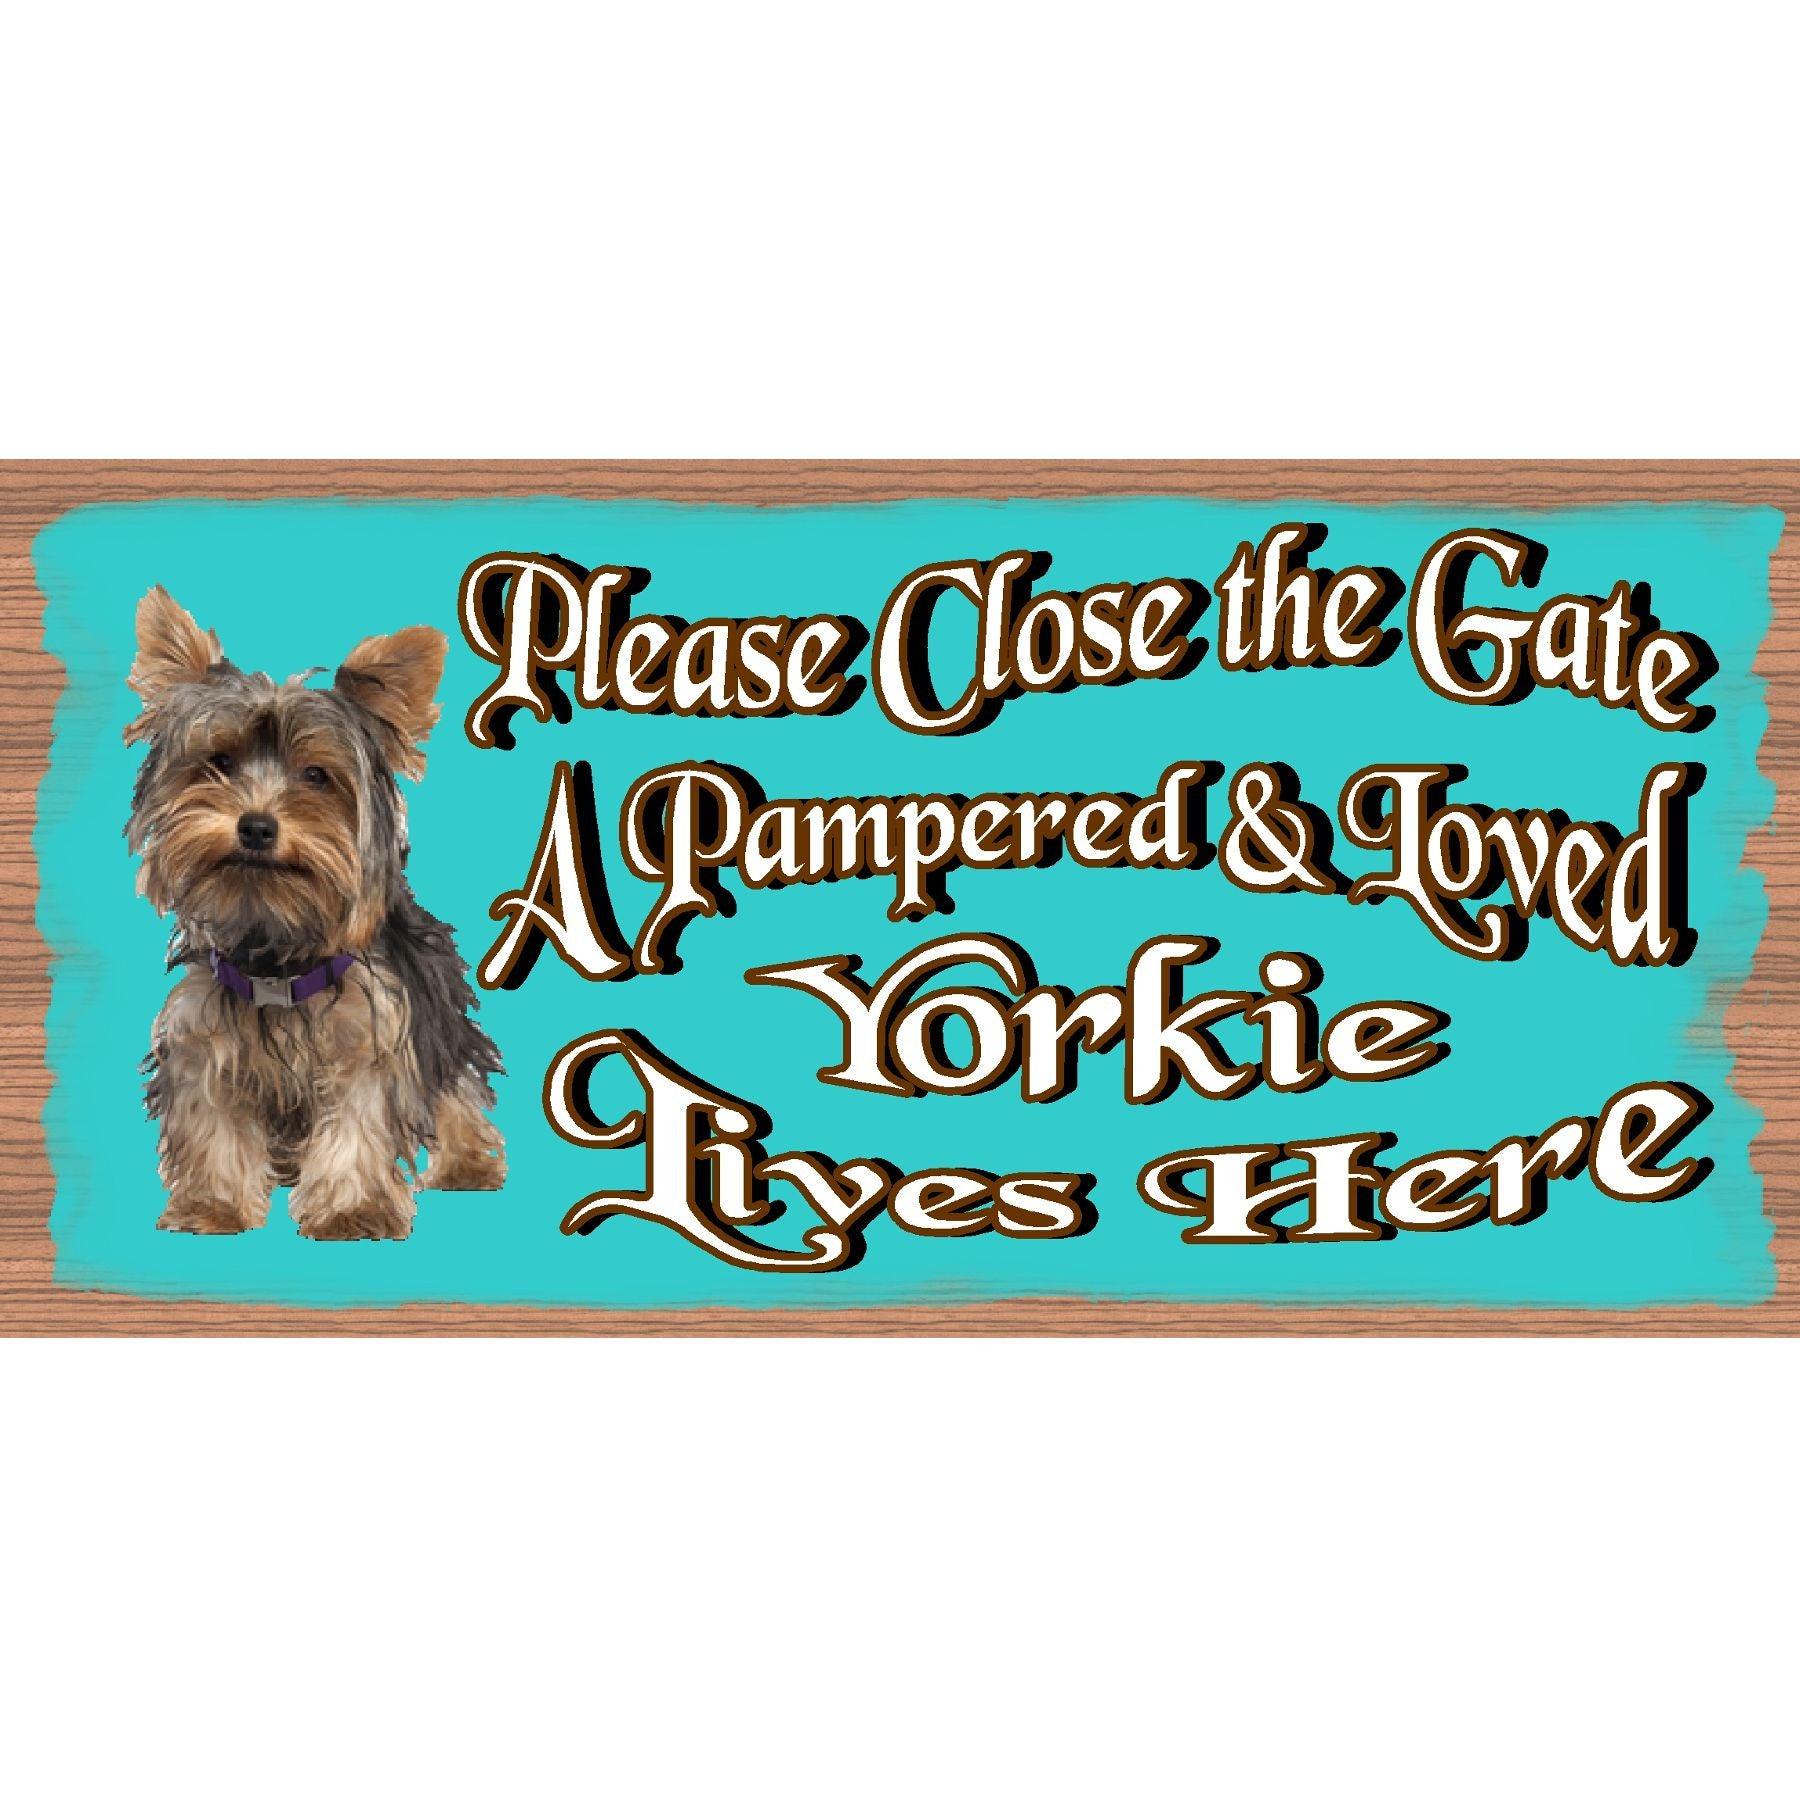 Yorkie Wood Signs -A Pampered & Loved Yorkie Lives Here GS 1958- Yorkie Wood Plaque